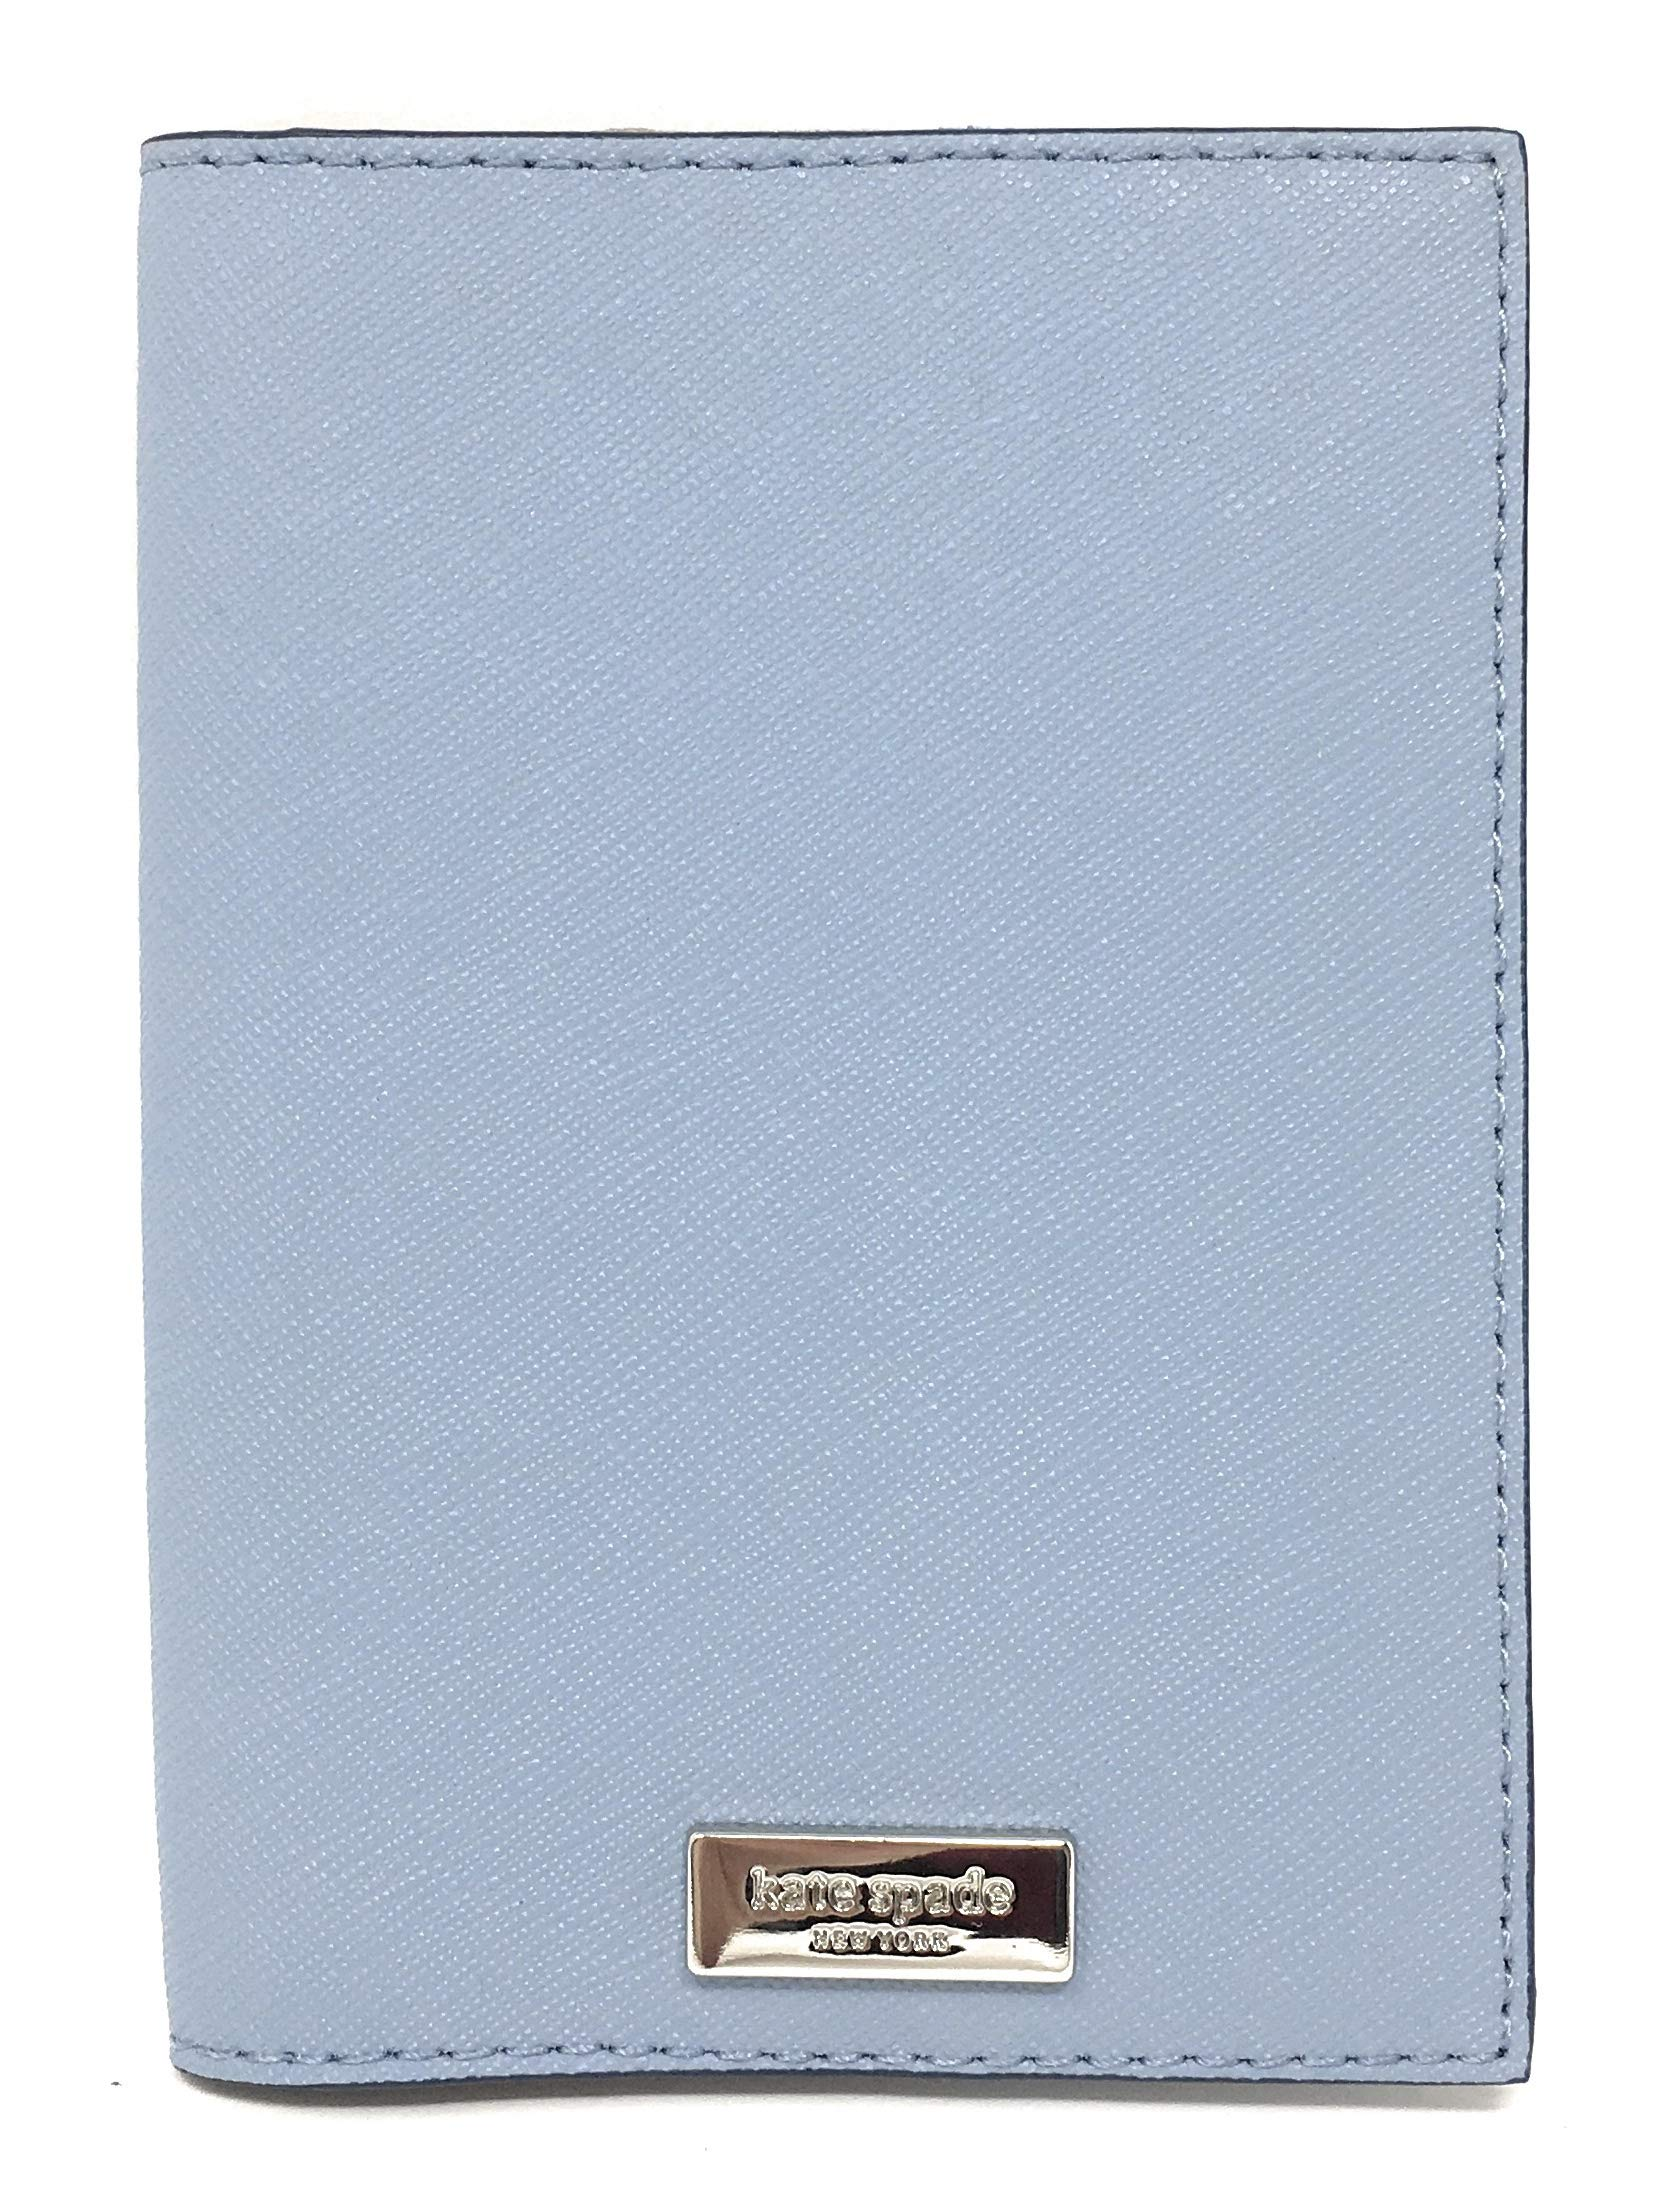 Kate Spade New York Laurel Way Leather Passport Holder (Blue Dawn) by Kate Spade New York